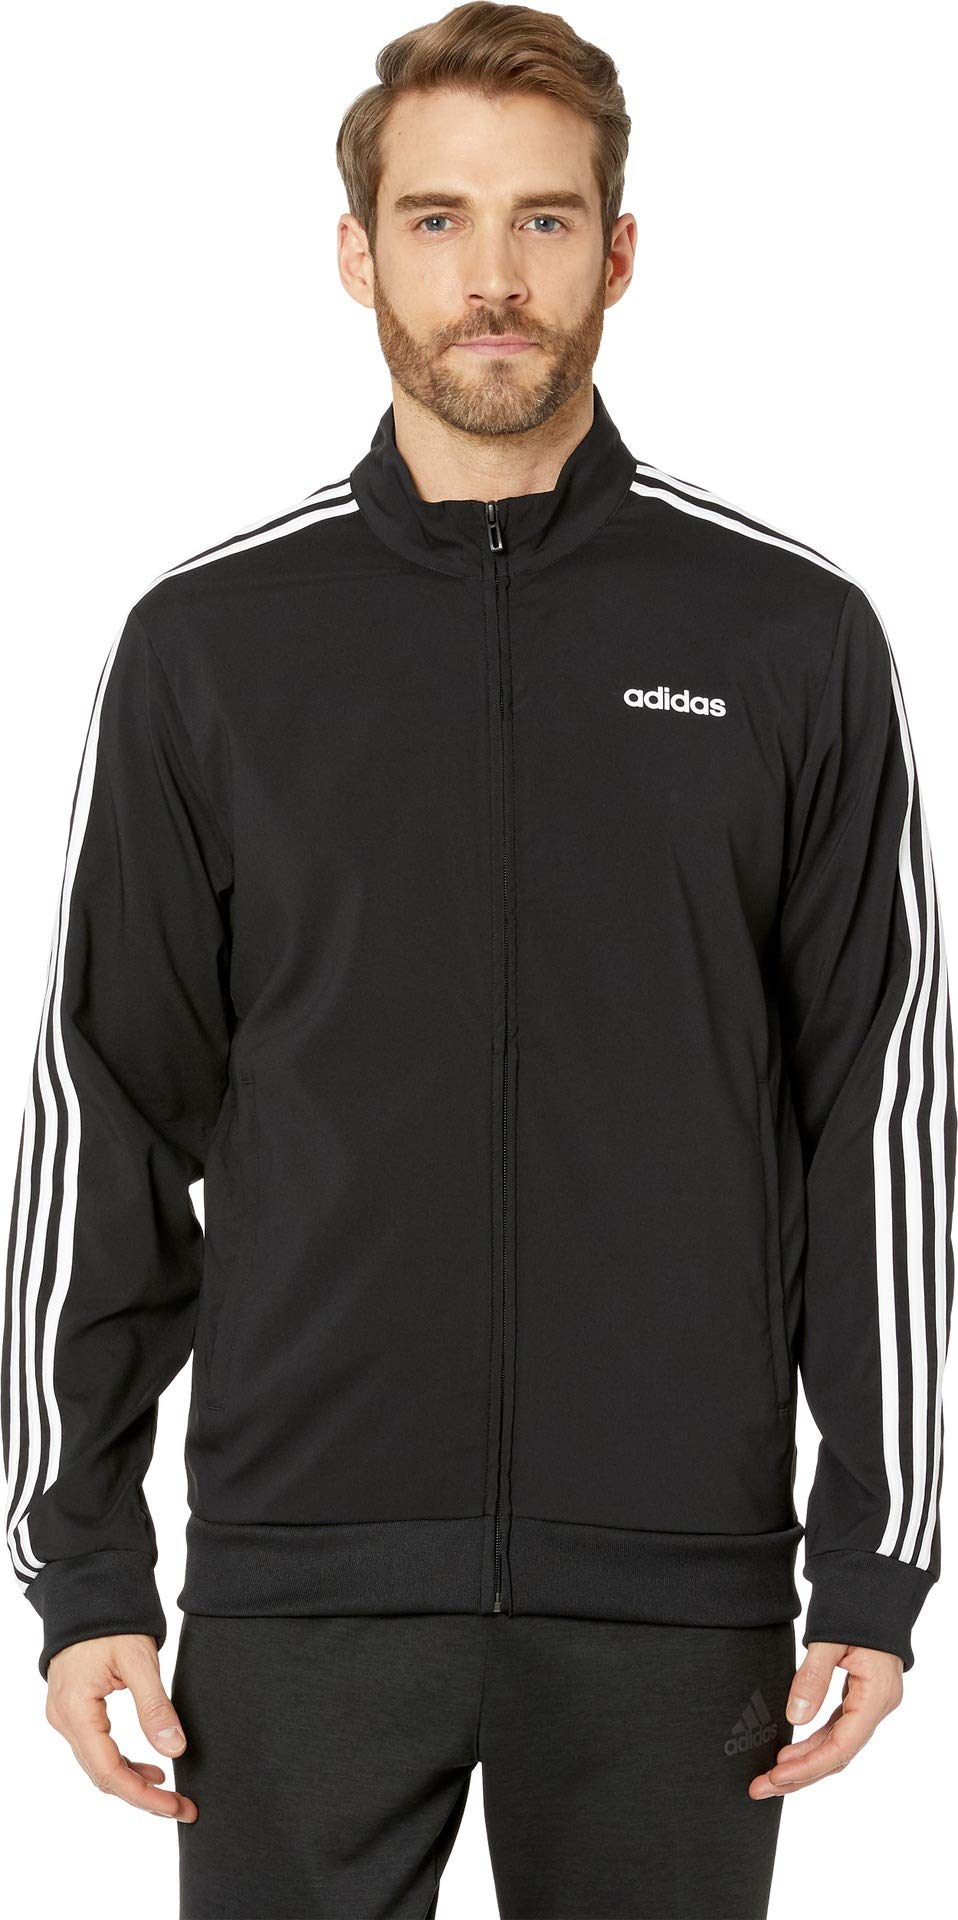 adidas Essentials Men's 3-Stripes Track Jacket, Black/White, Large by adidas